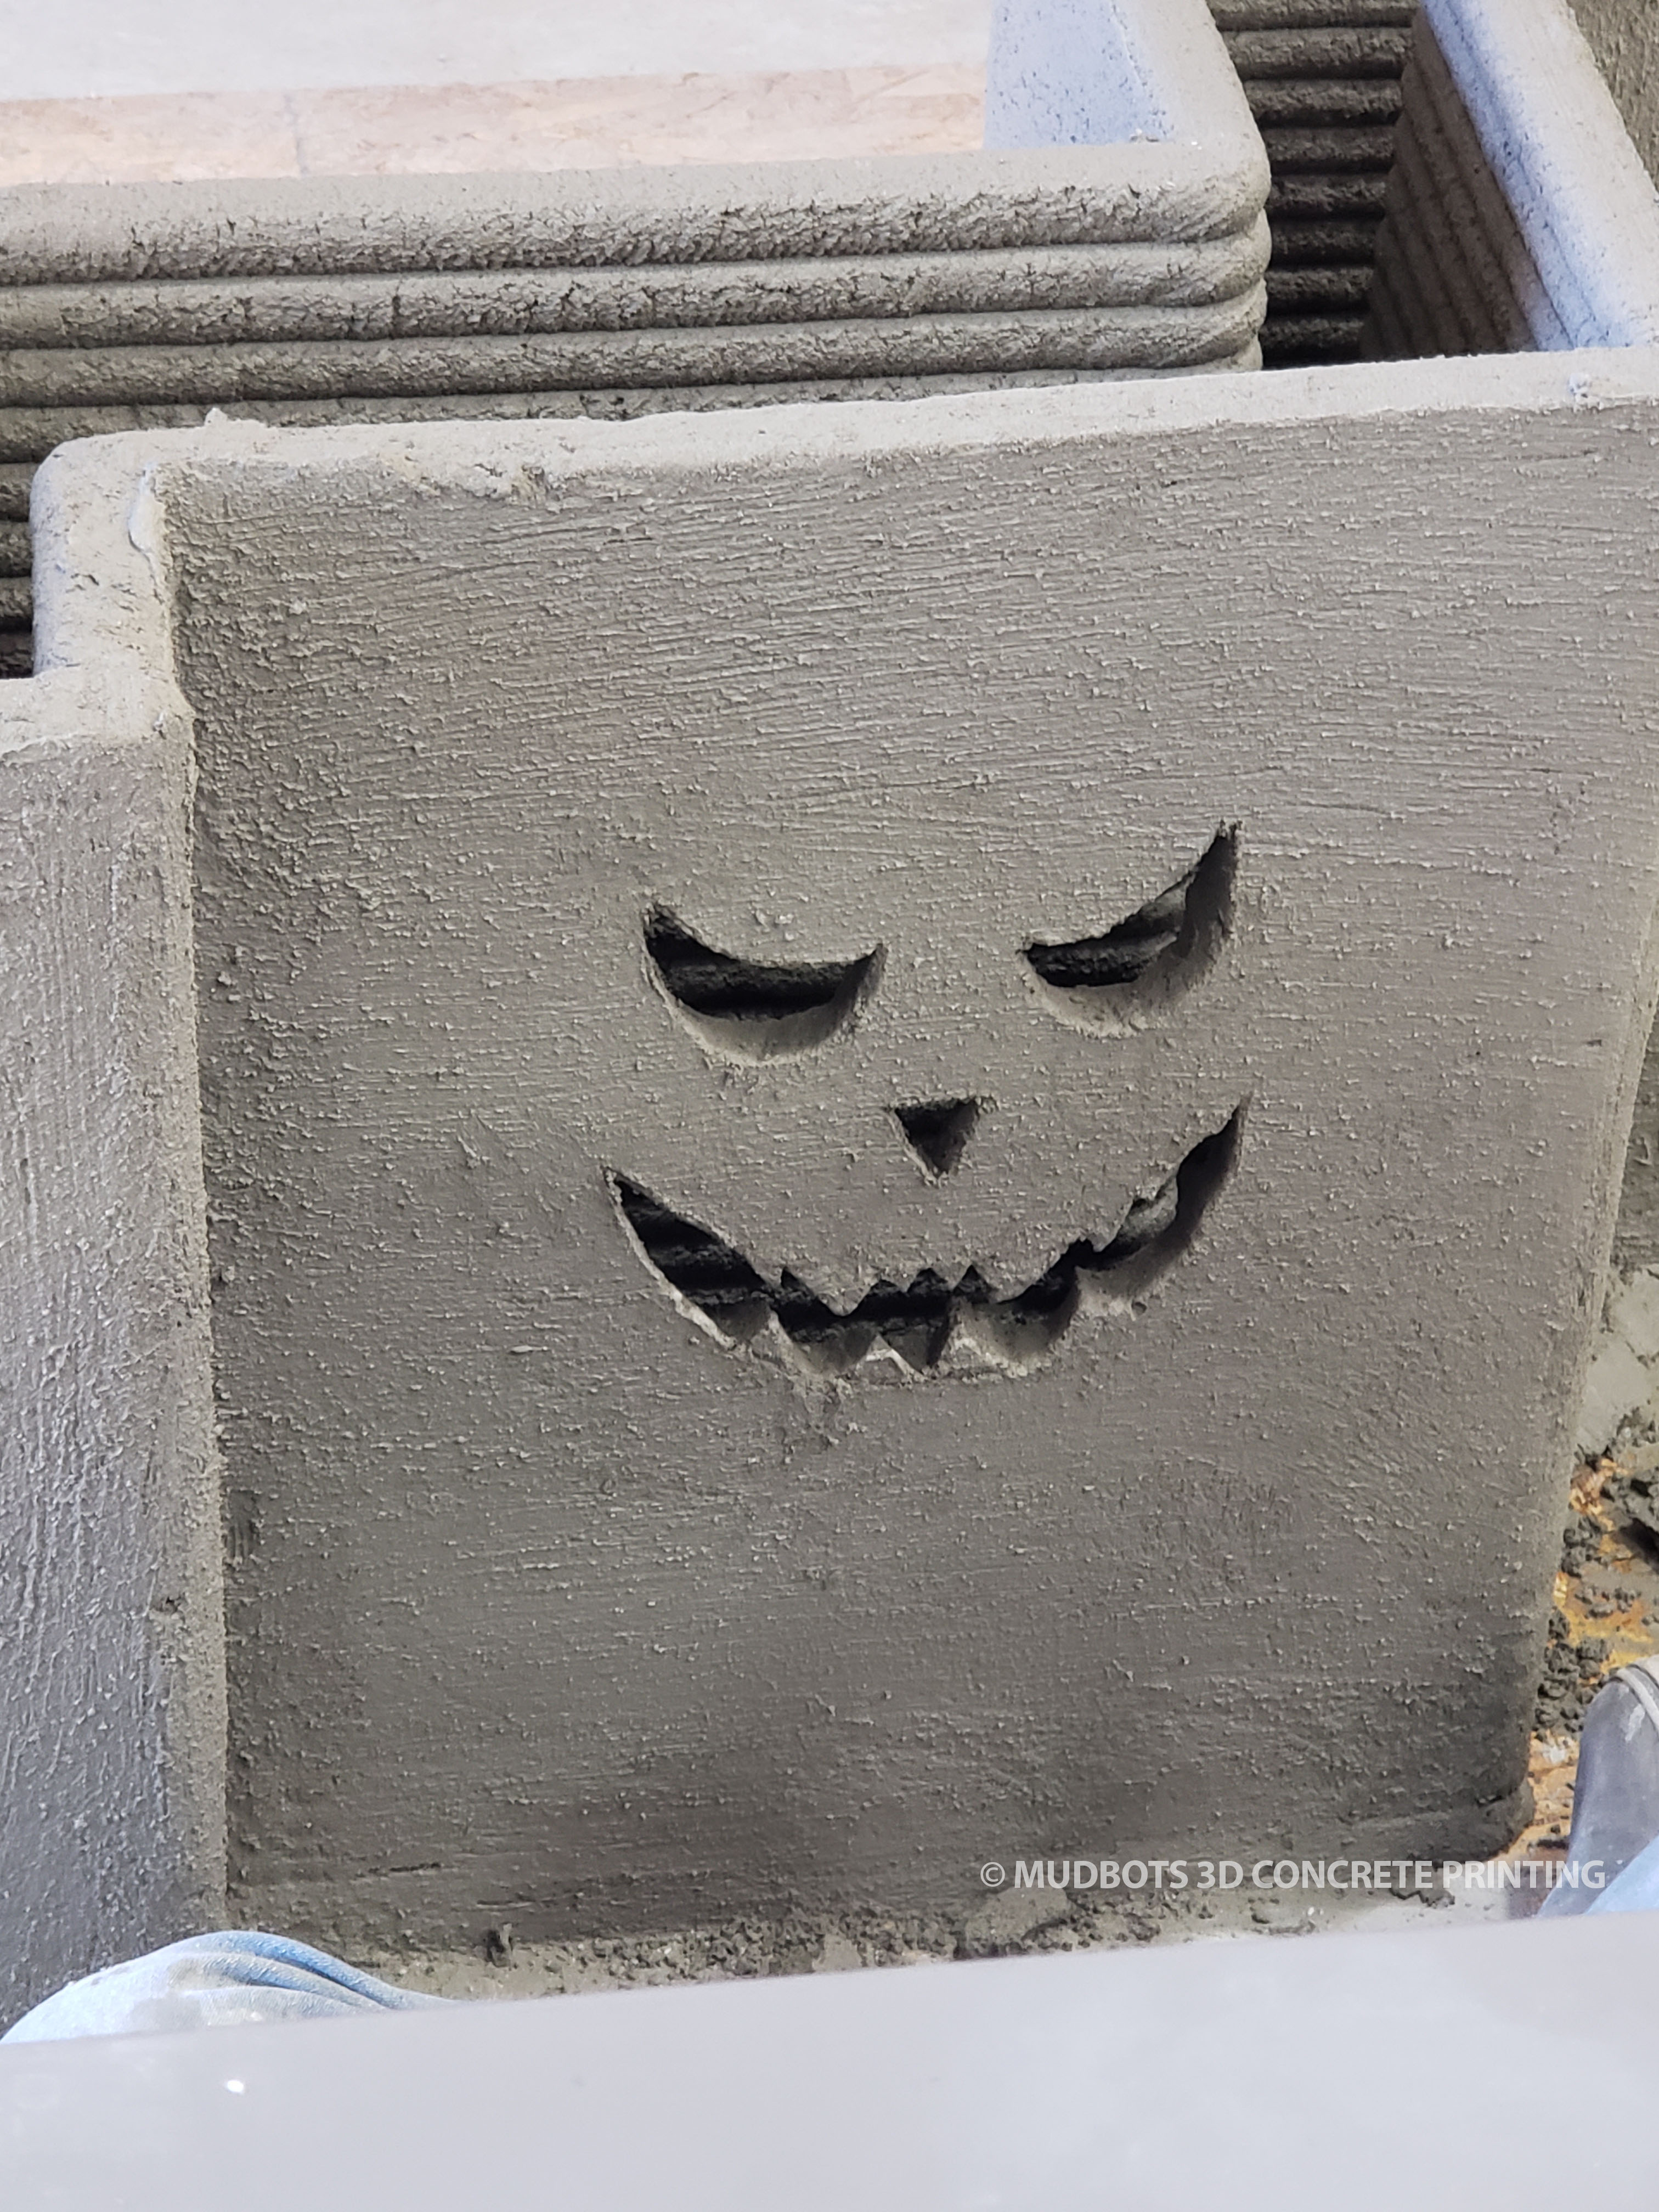 This is how we celebrate Halloween here at MudBots! The design flexibility of a concrete printed structures is like nothing you have seen before.